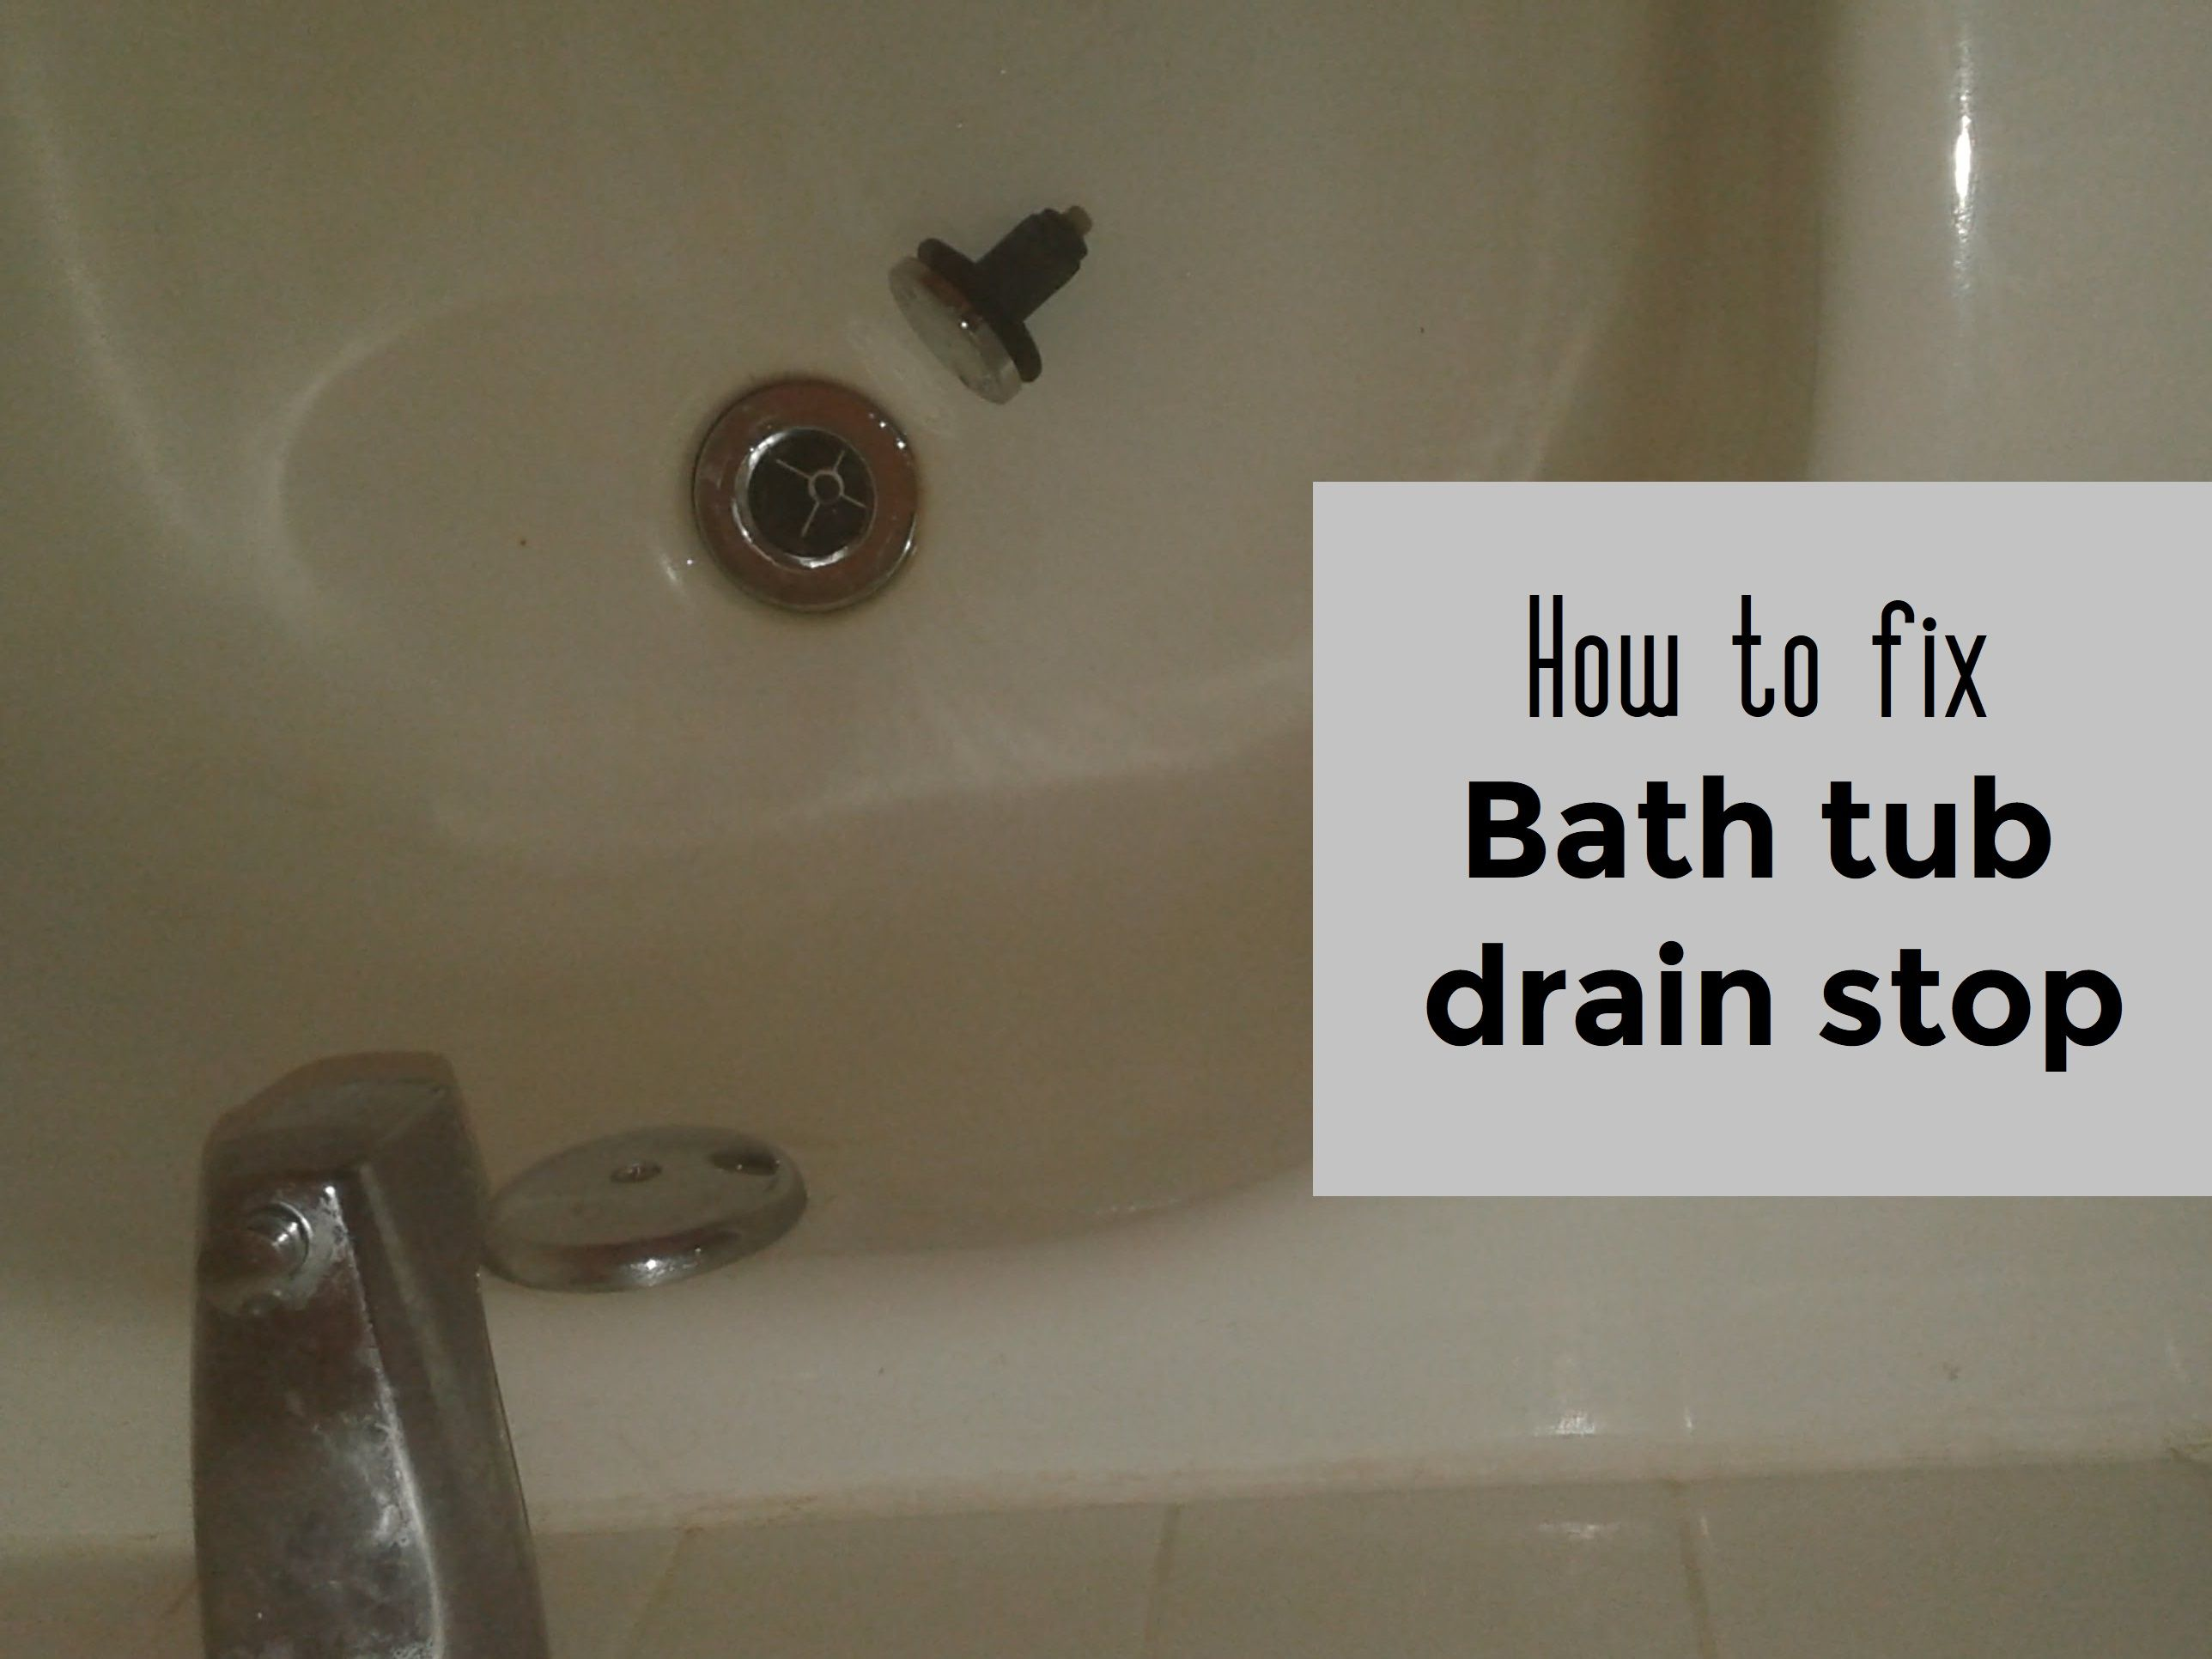 How to fix bathtub drain stop | Bath tubs, Tubs and Bath